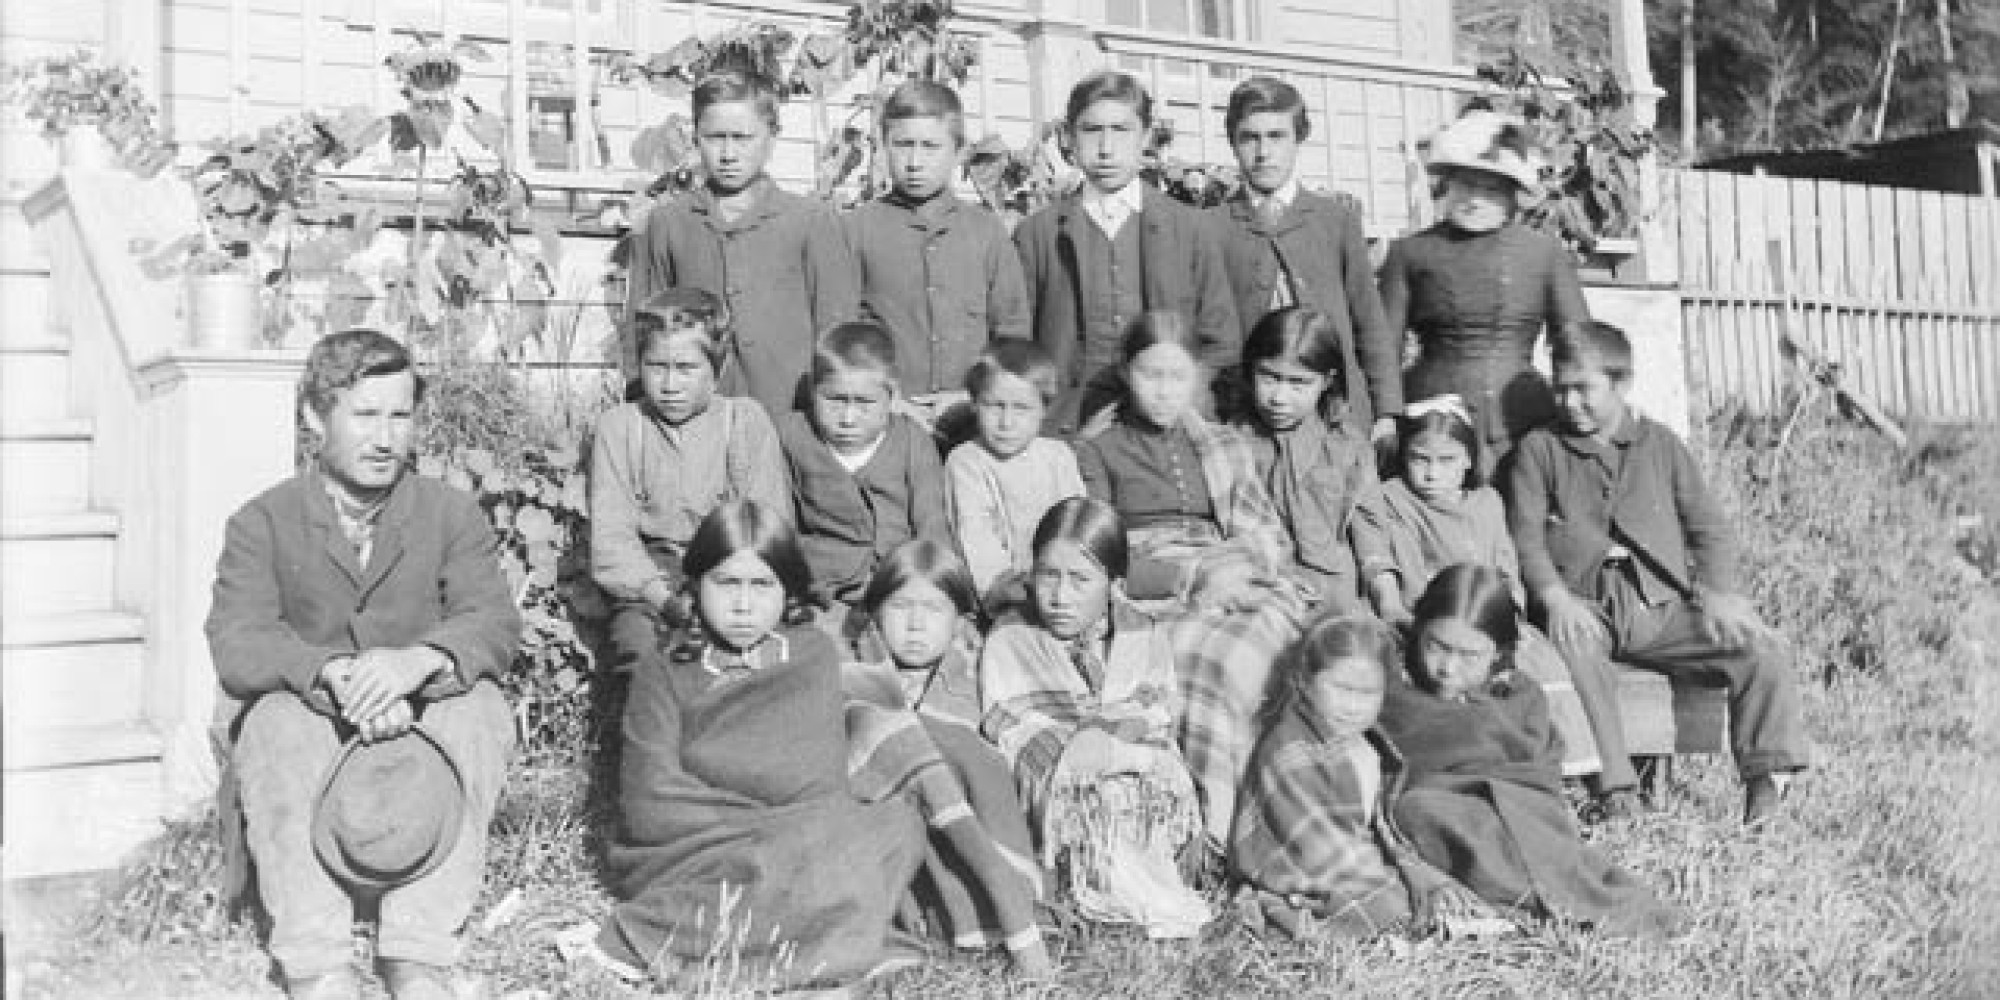 canadian residential school system education essay Residential schools and the effects on indigenous health and well-being  survivors of the canadian residential school system  policy on education.